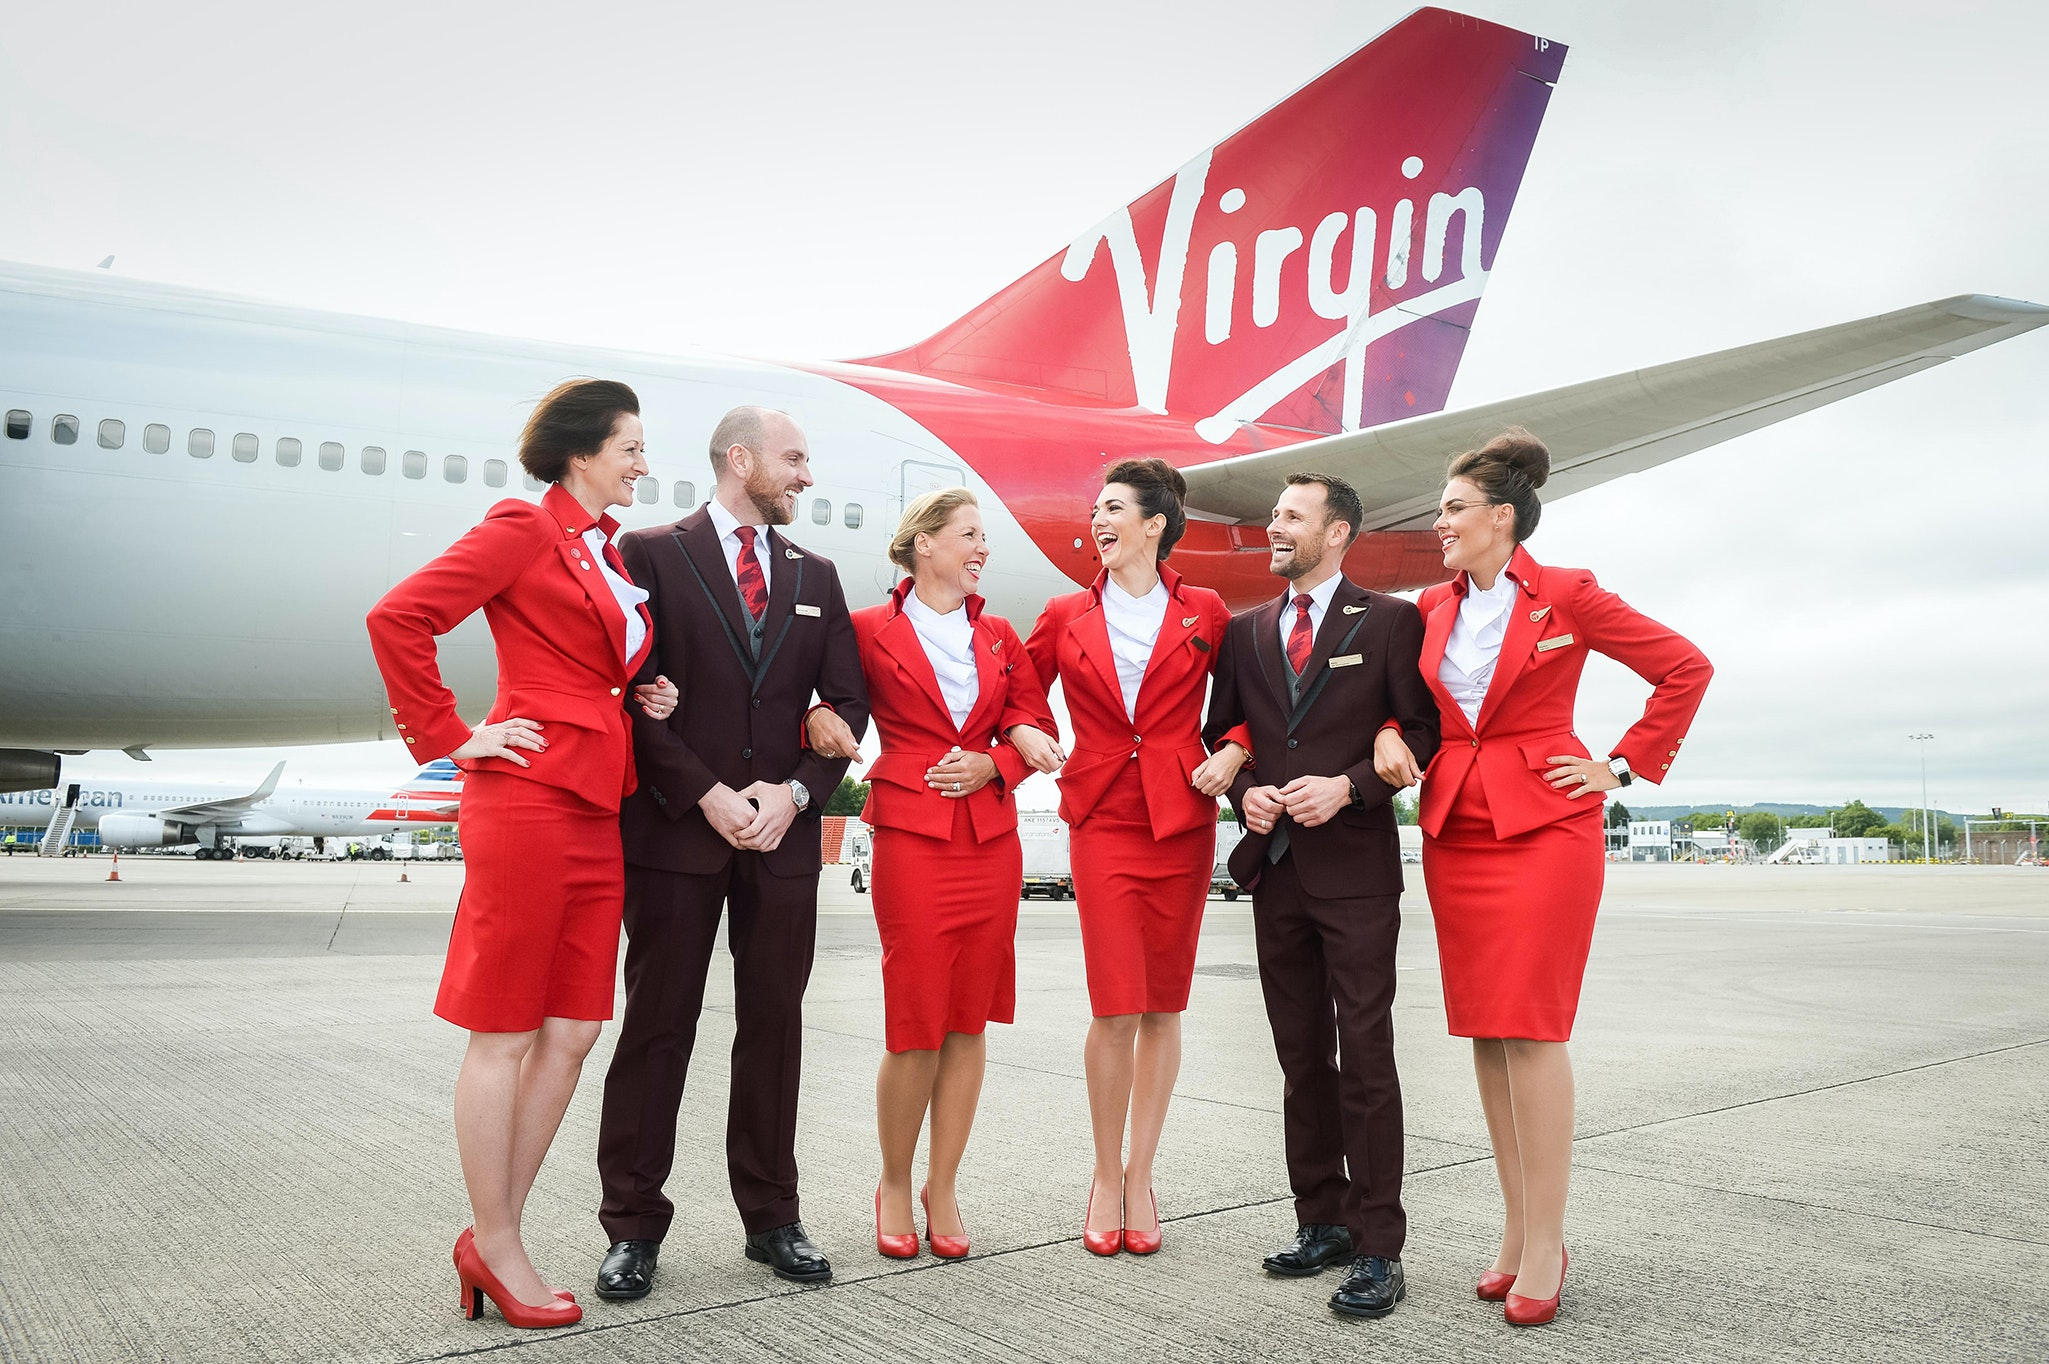 Virgin Atlantic—known for its Vivienne Westwood–designed skirted suits and nipped-waist jackets in bold red—now allows female flight attendants to wear pants and go without makeup.